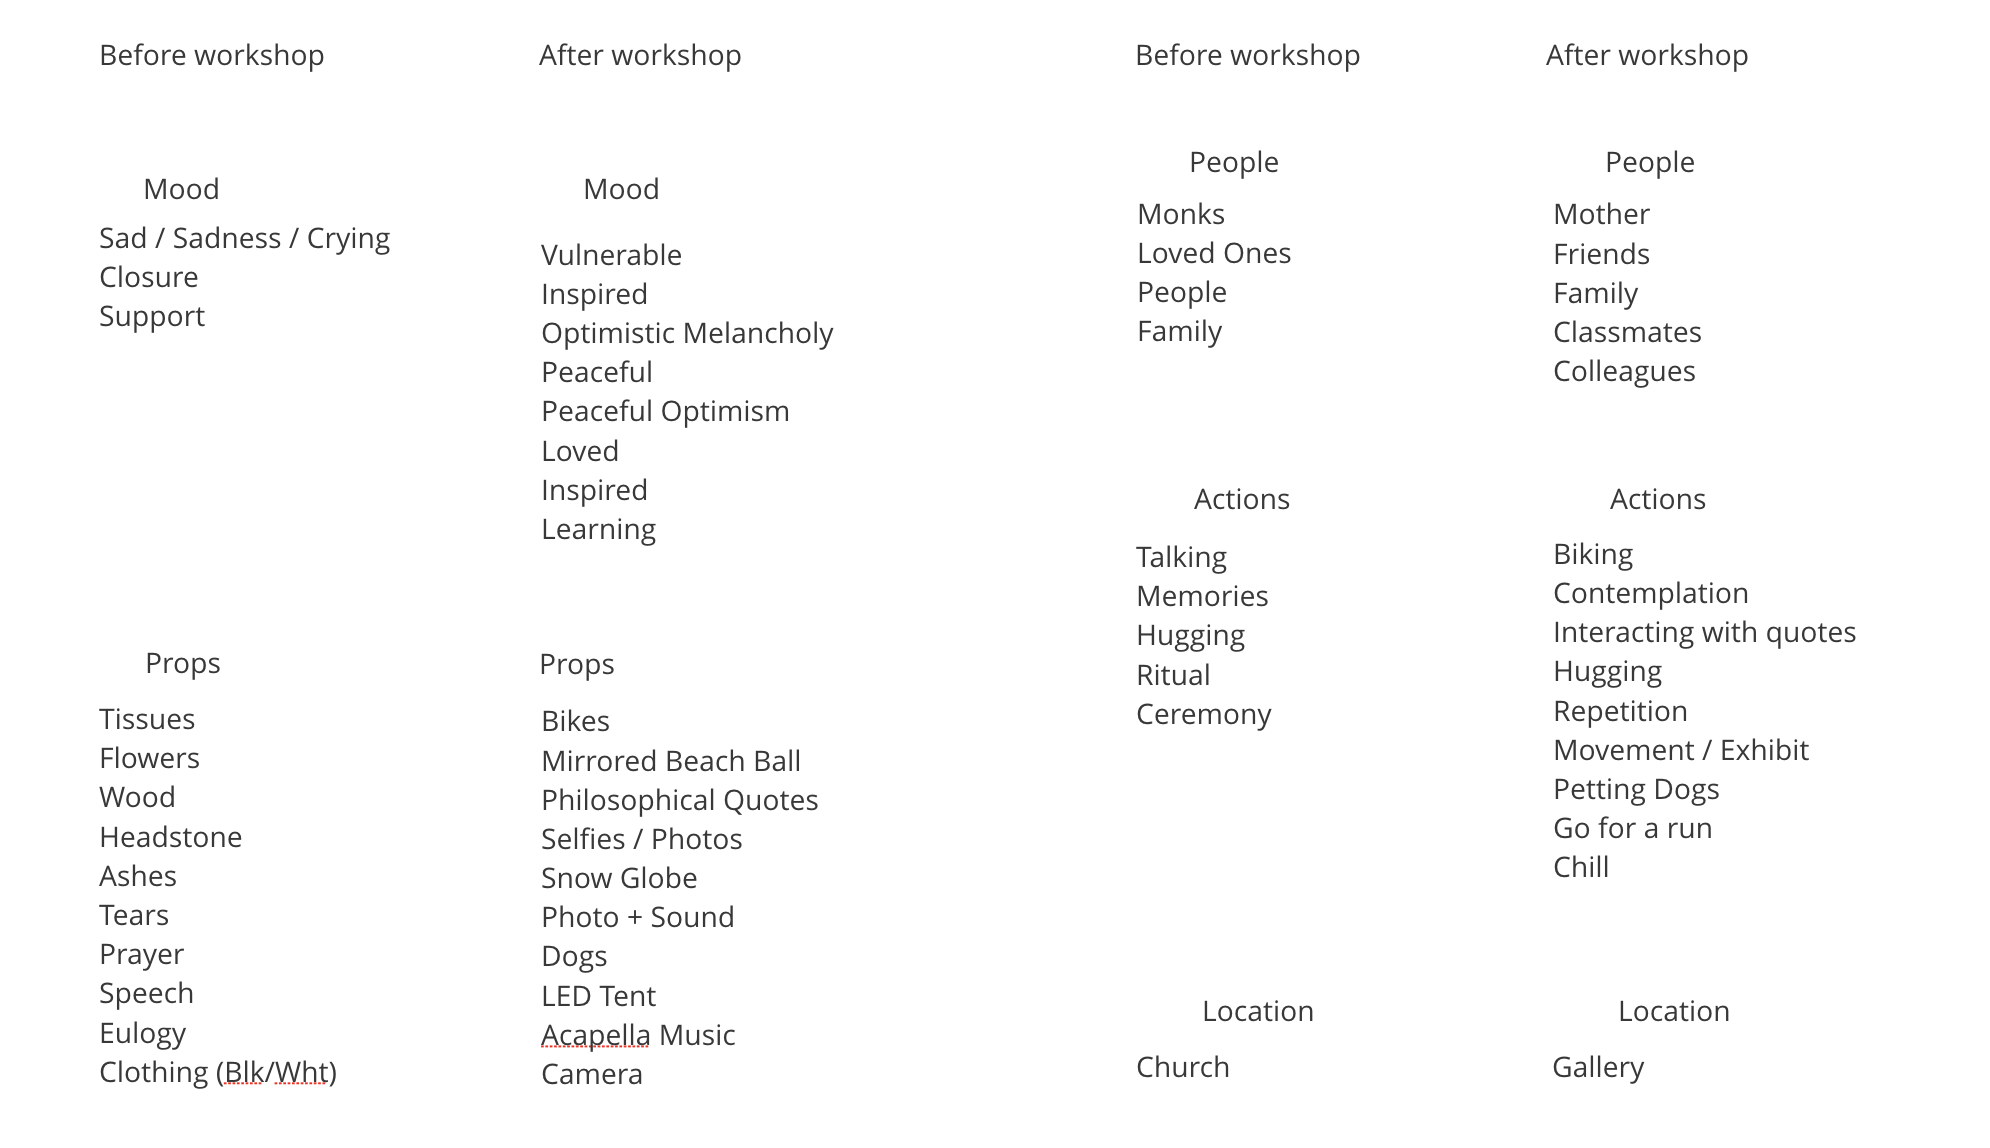 Words associated with funerals compared at the end of the workshop